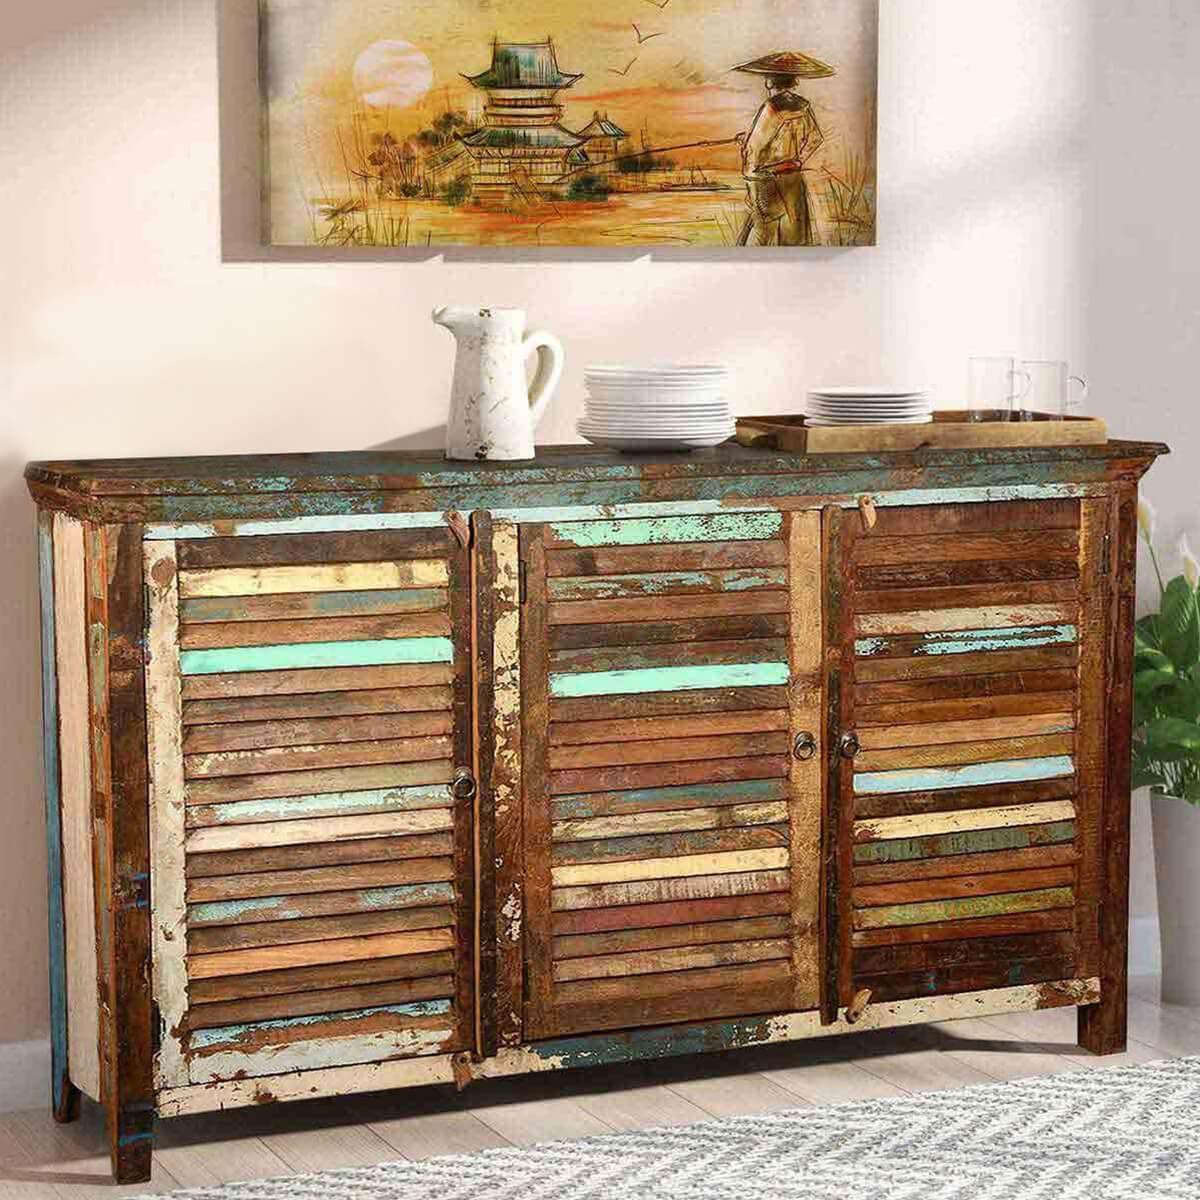 Stockton rustic reclaimed wood shutter door buffet cabinet